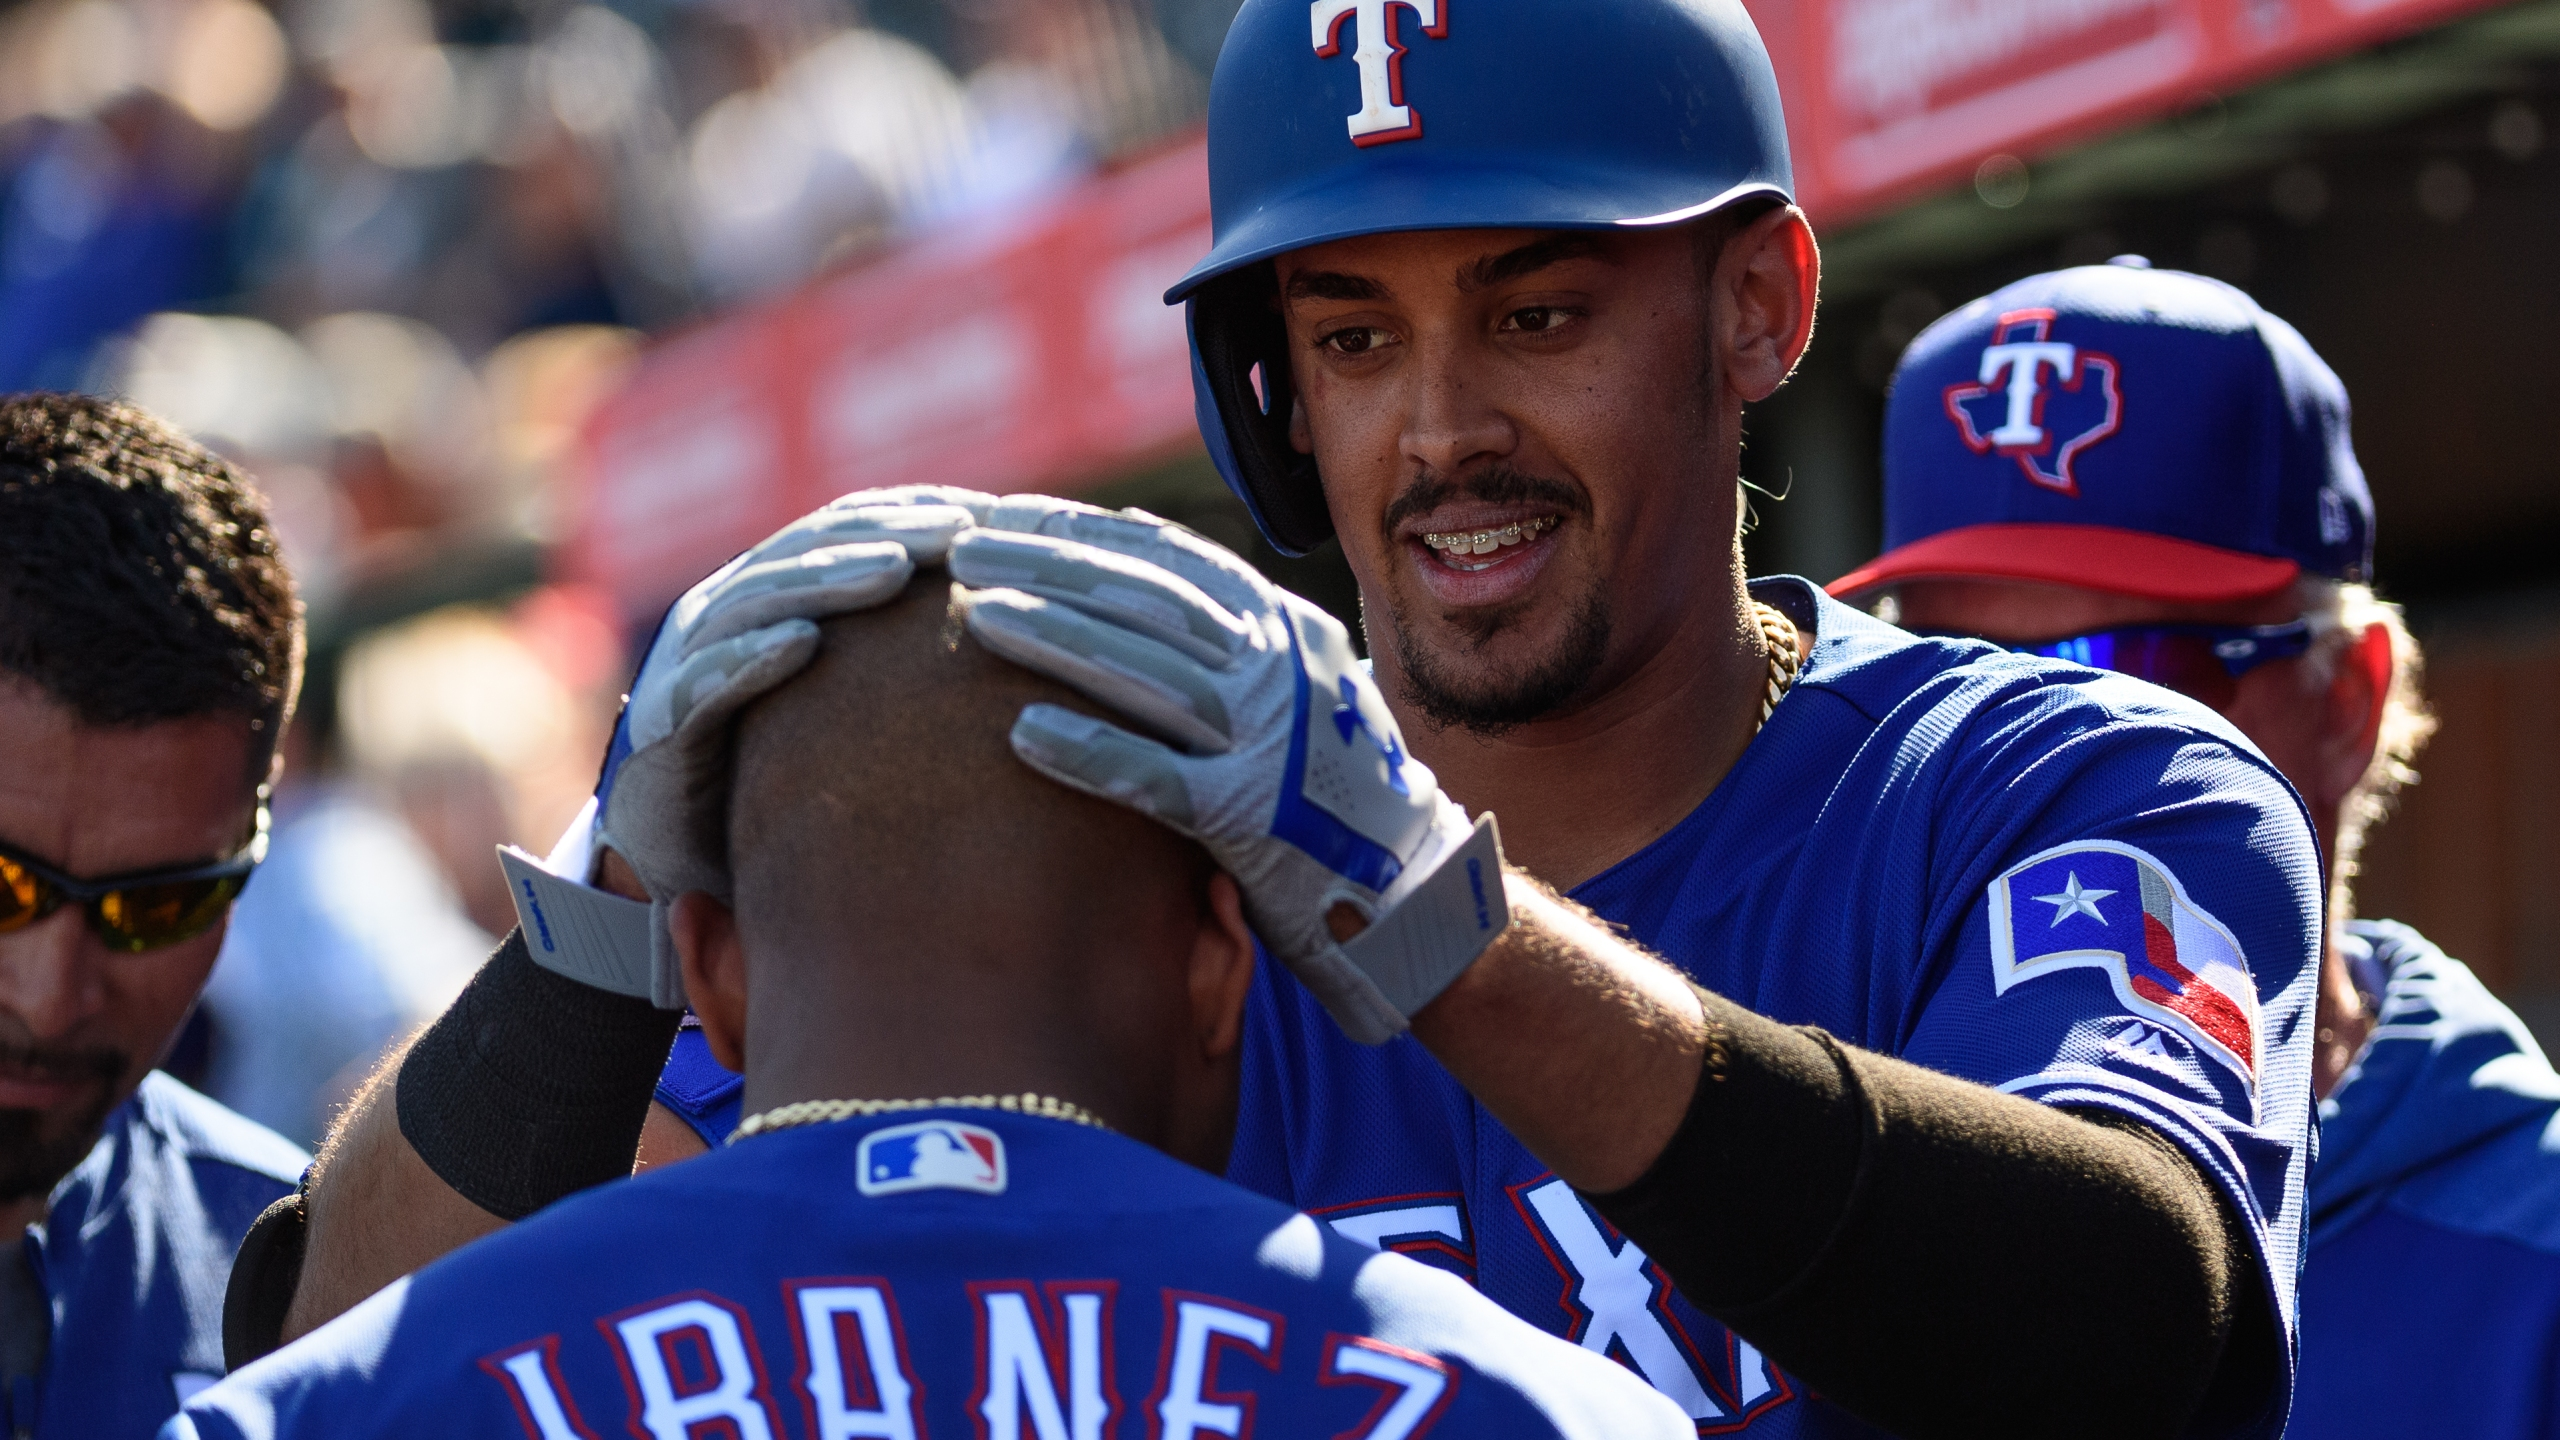 Texas Rangers spring training Getty